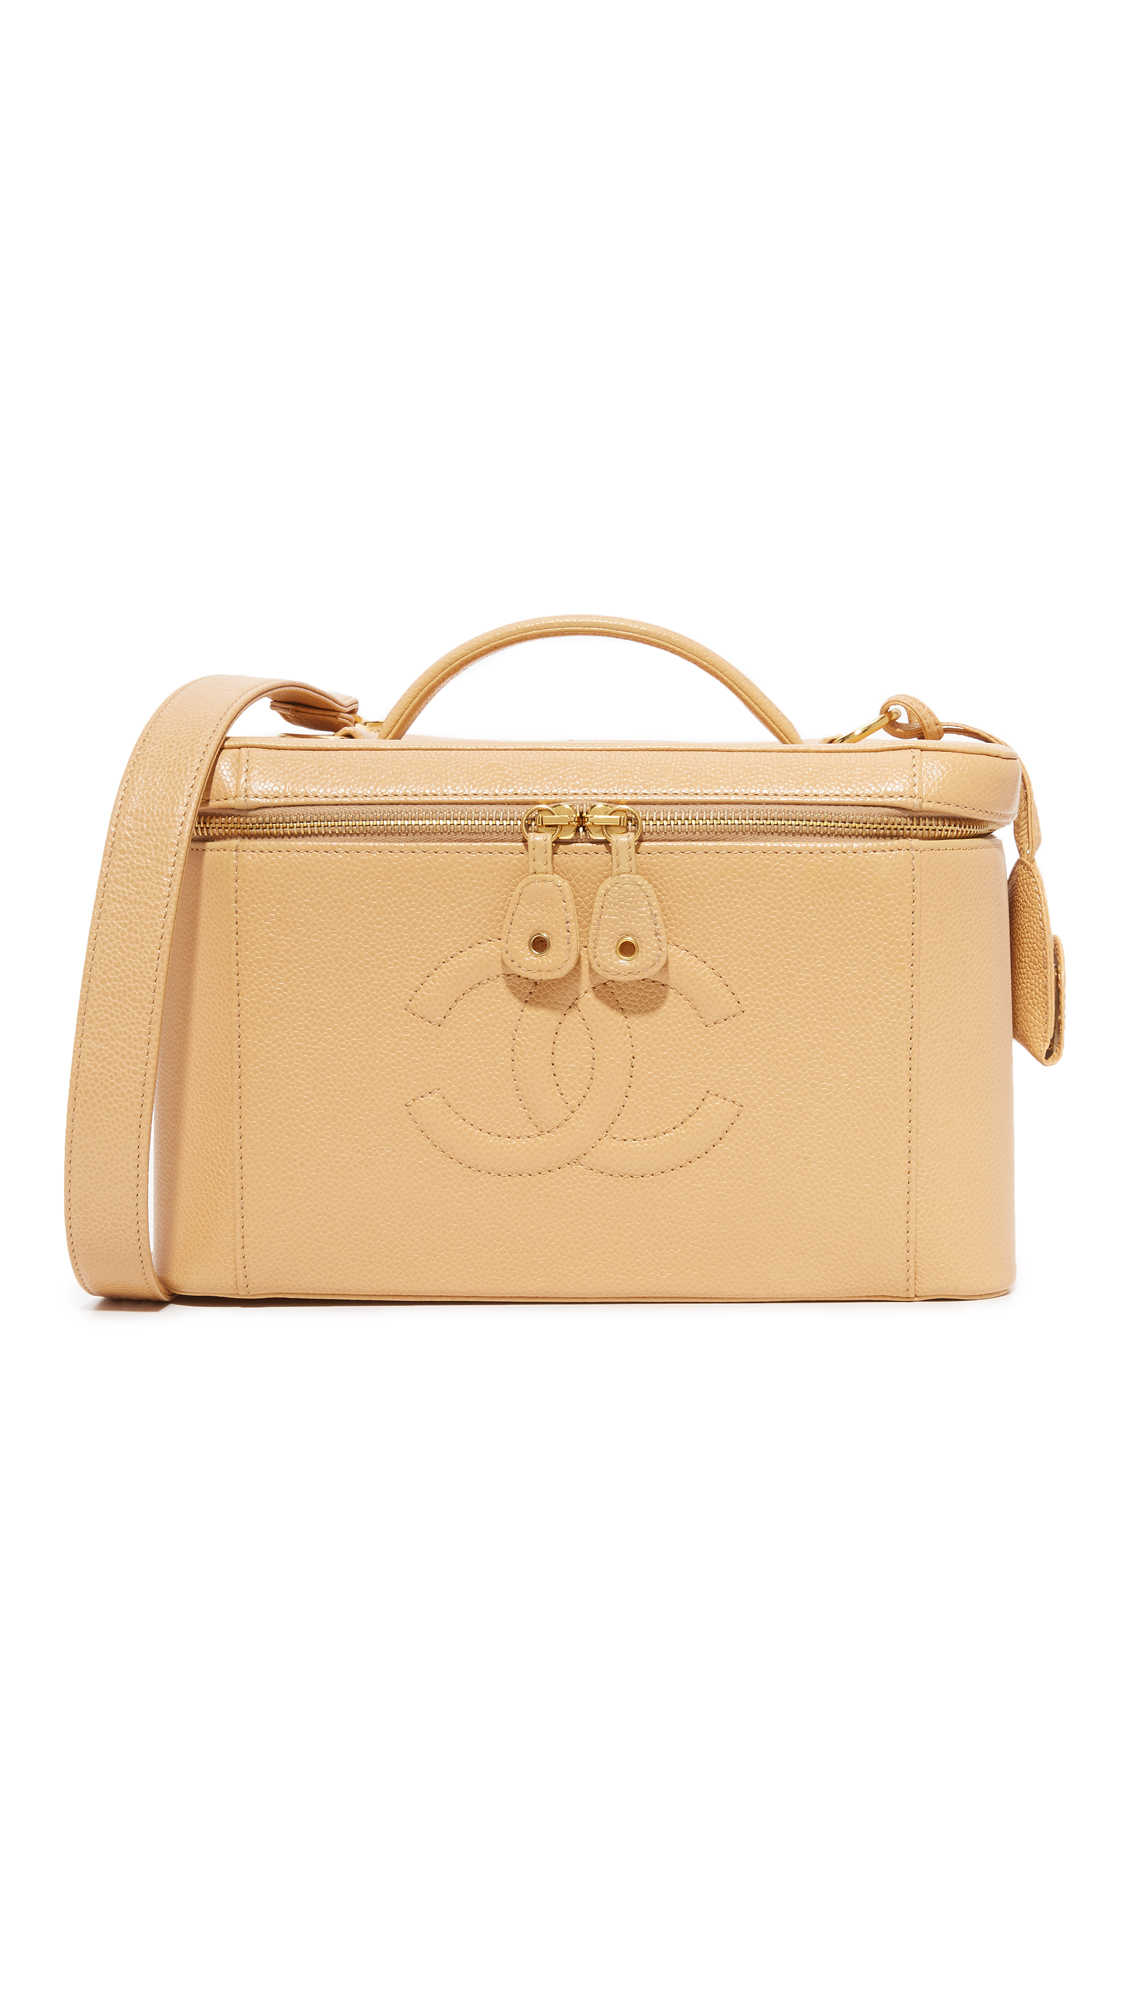 what goes around comes around female 186518 what goes around comes around chanel large vanity bag previously owned beige